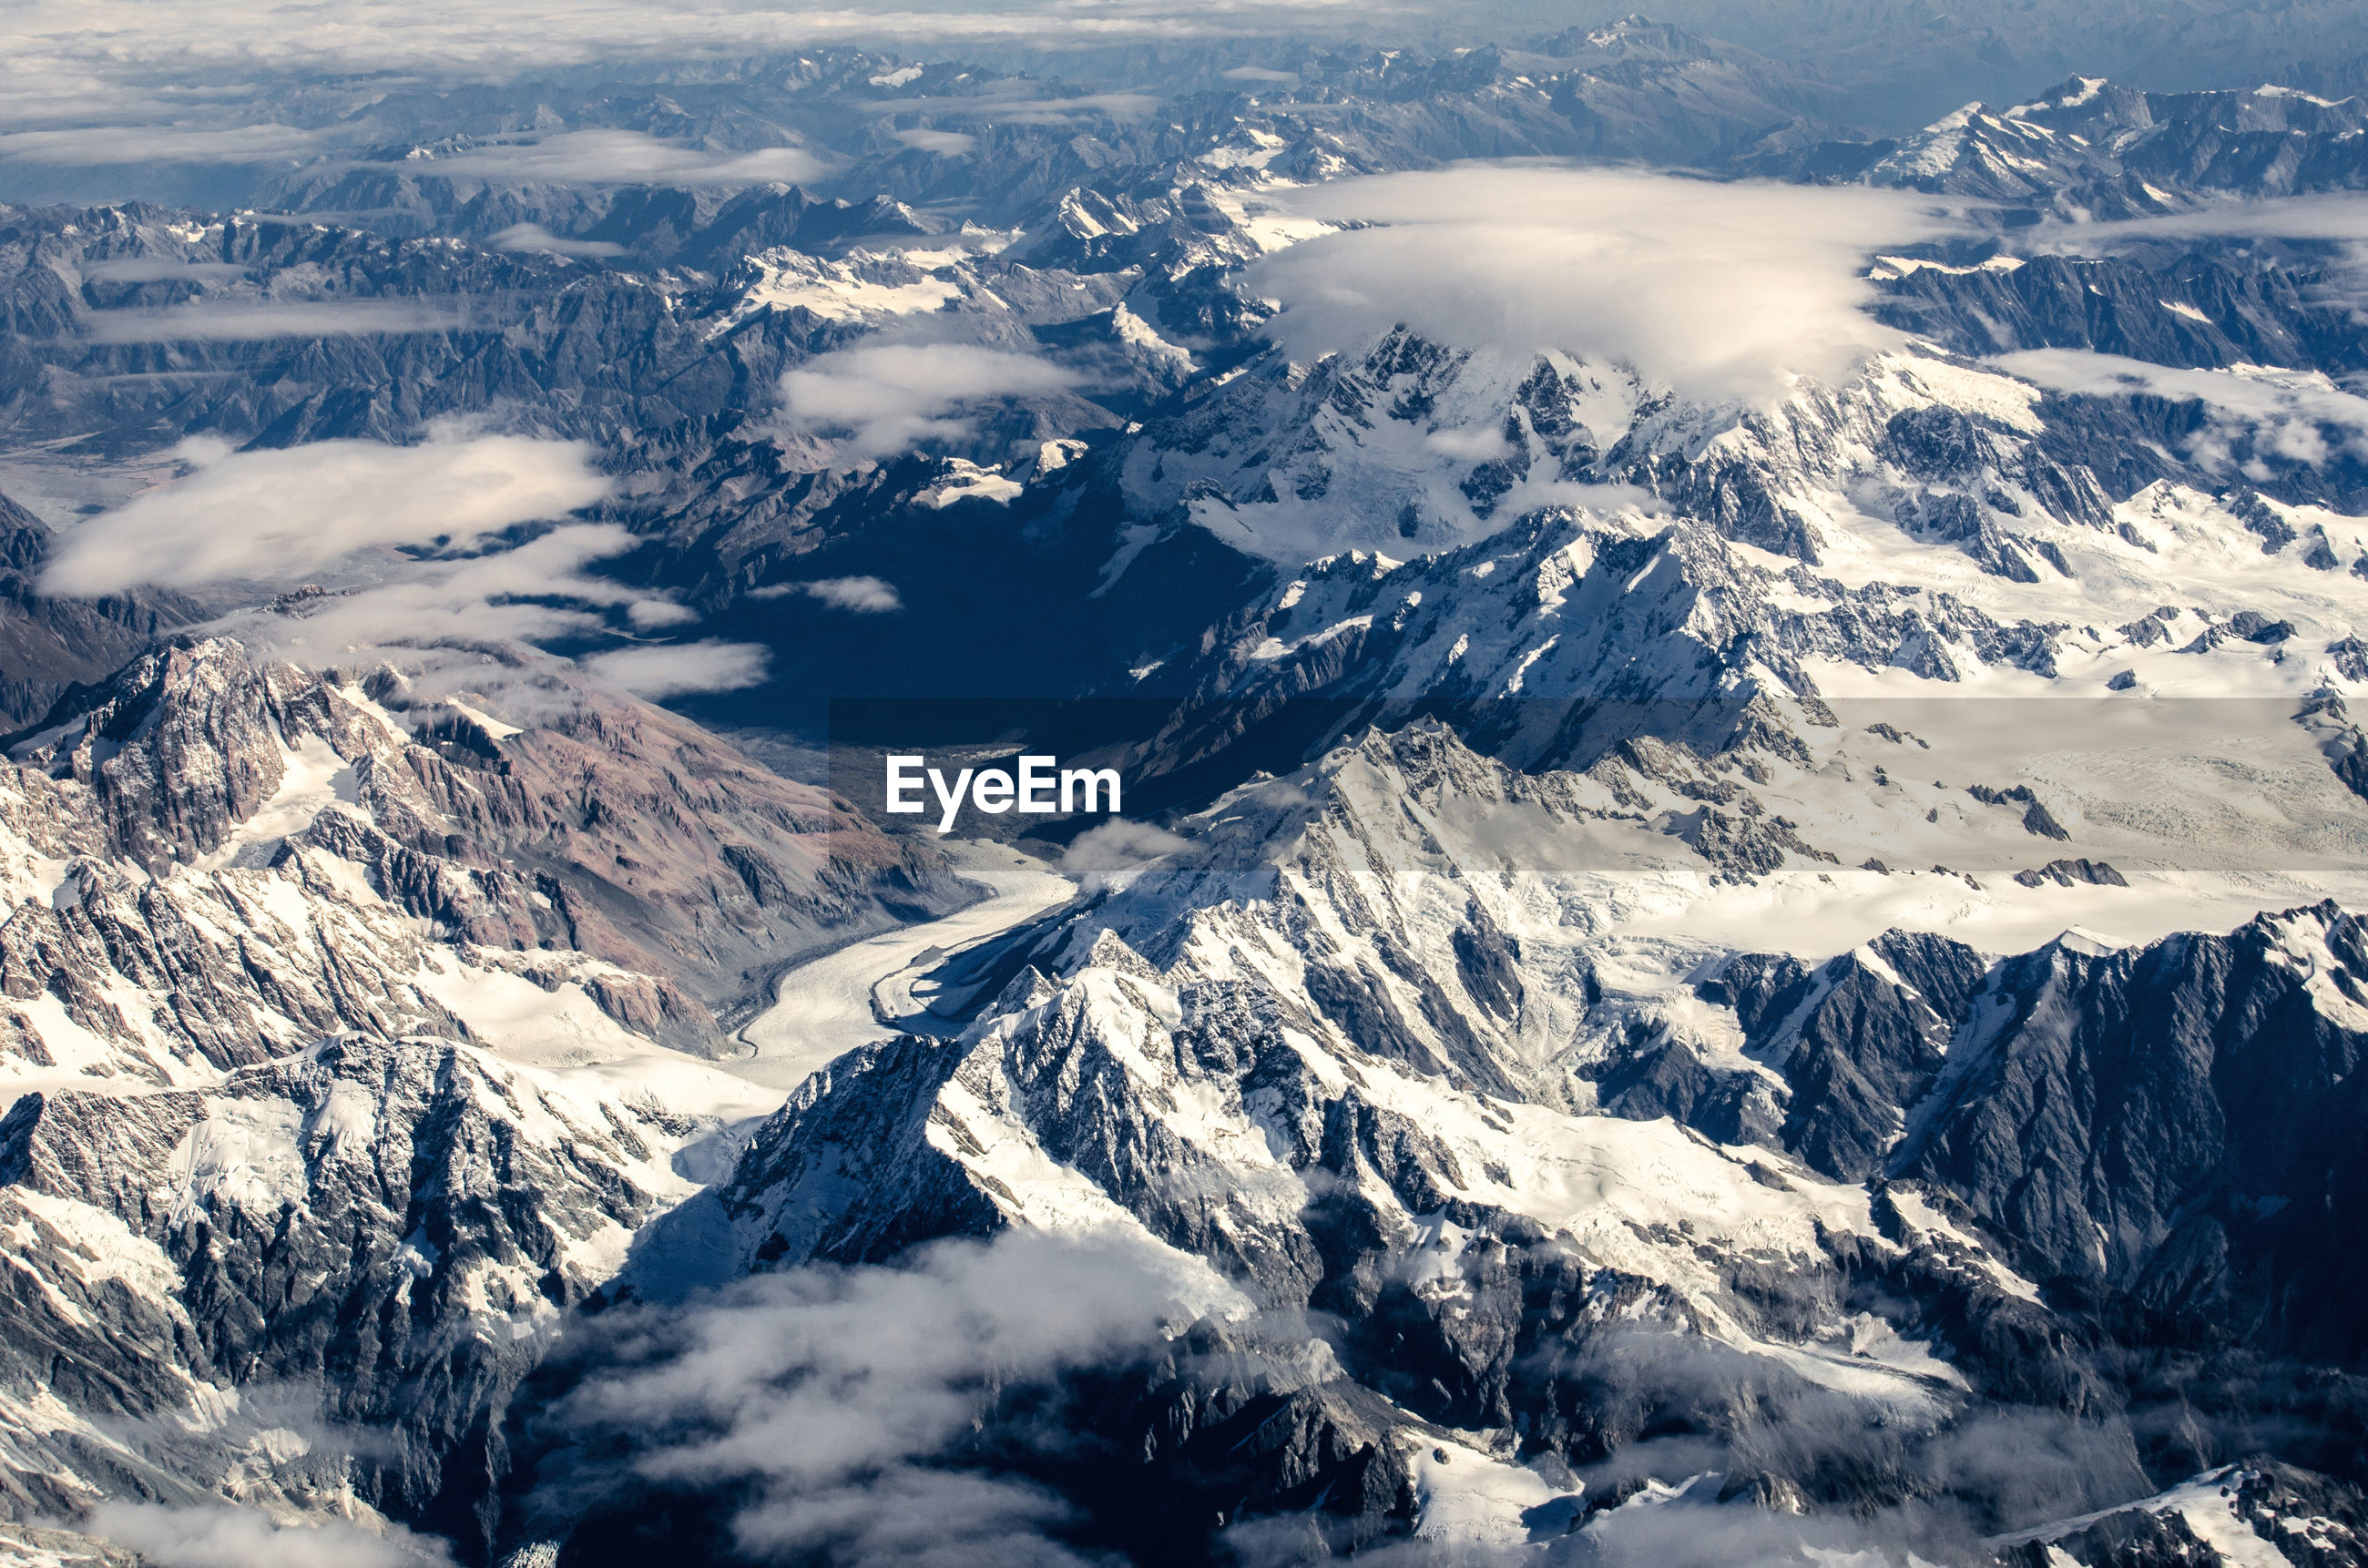 Southern alps, tasman glacier is the largest glacier in new zealand